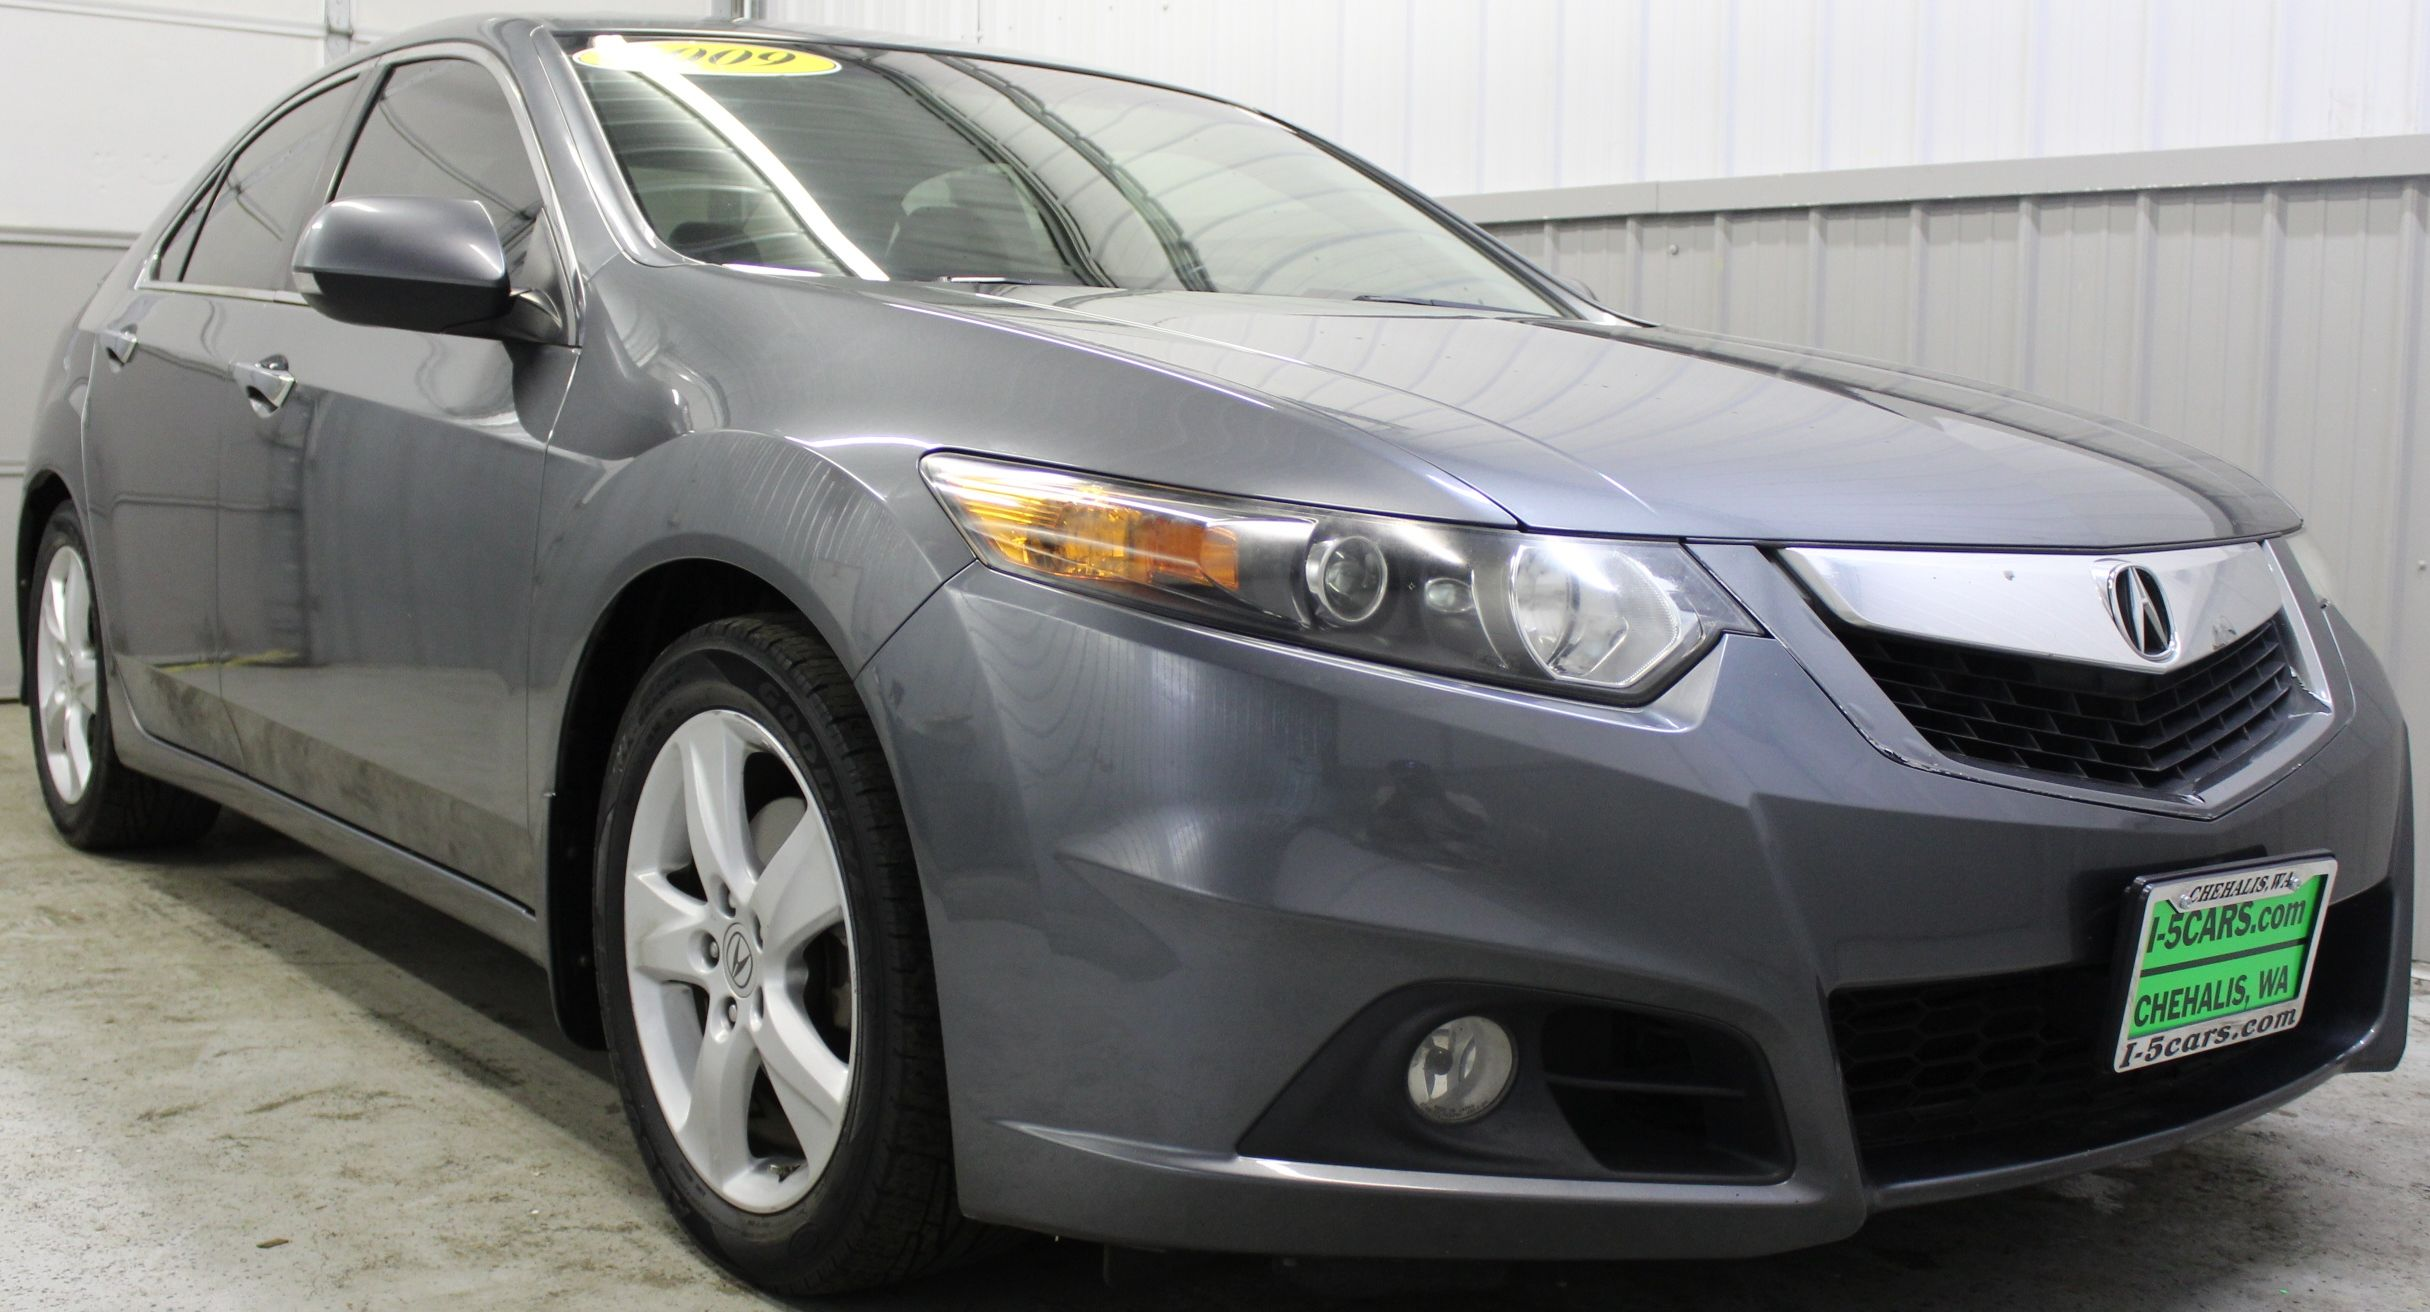 pre owned 2009 acura tsx base sedan in chehalis c1771a